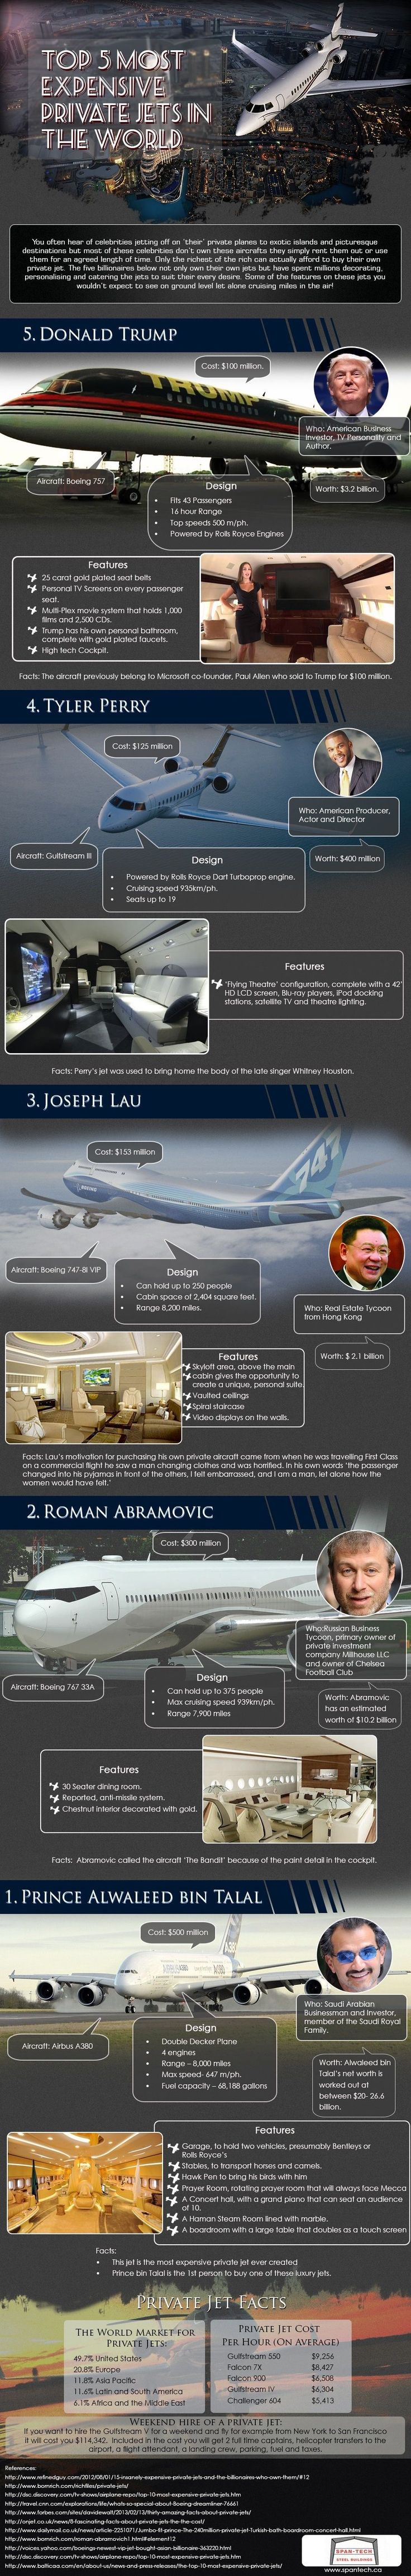 This infographic takes a look at the five most expensive private jets in the world, the billionaires who own them and what exactly has been done to them to make them so expensive. Ranging in cost from $100 million to $500 million these jets have got to be seen to be believed. #luxuryprivatejet